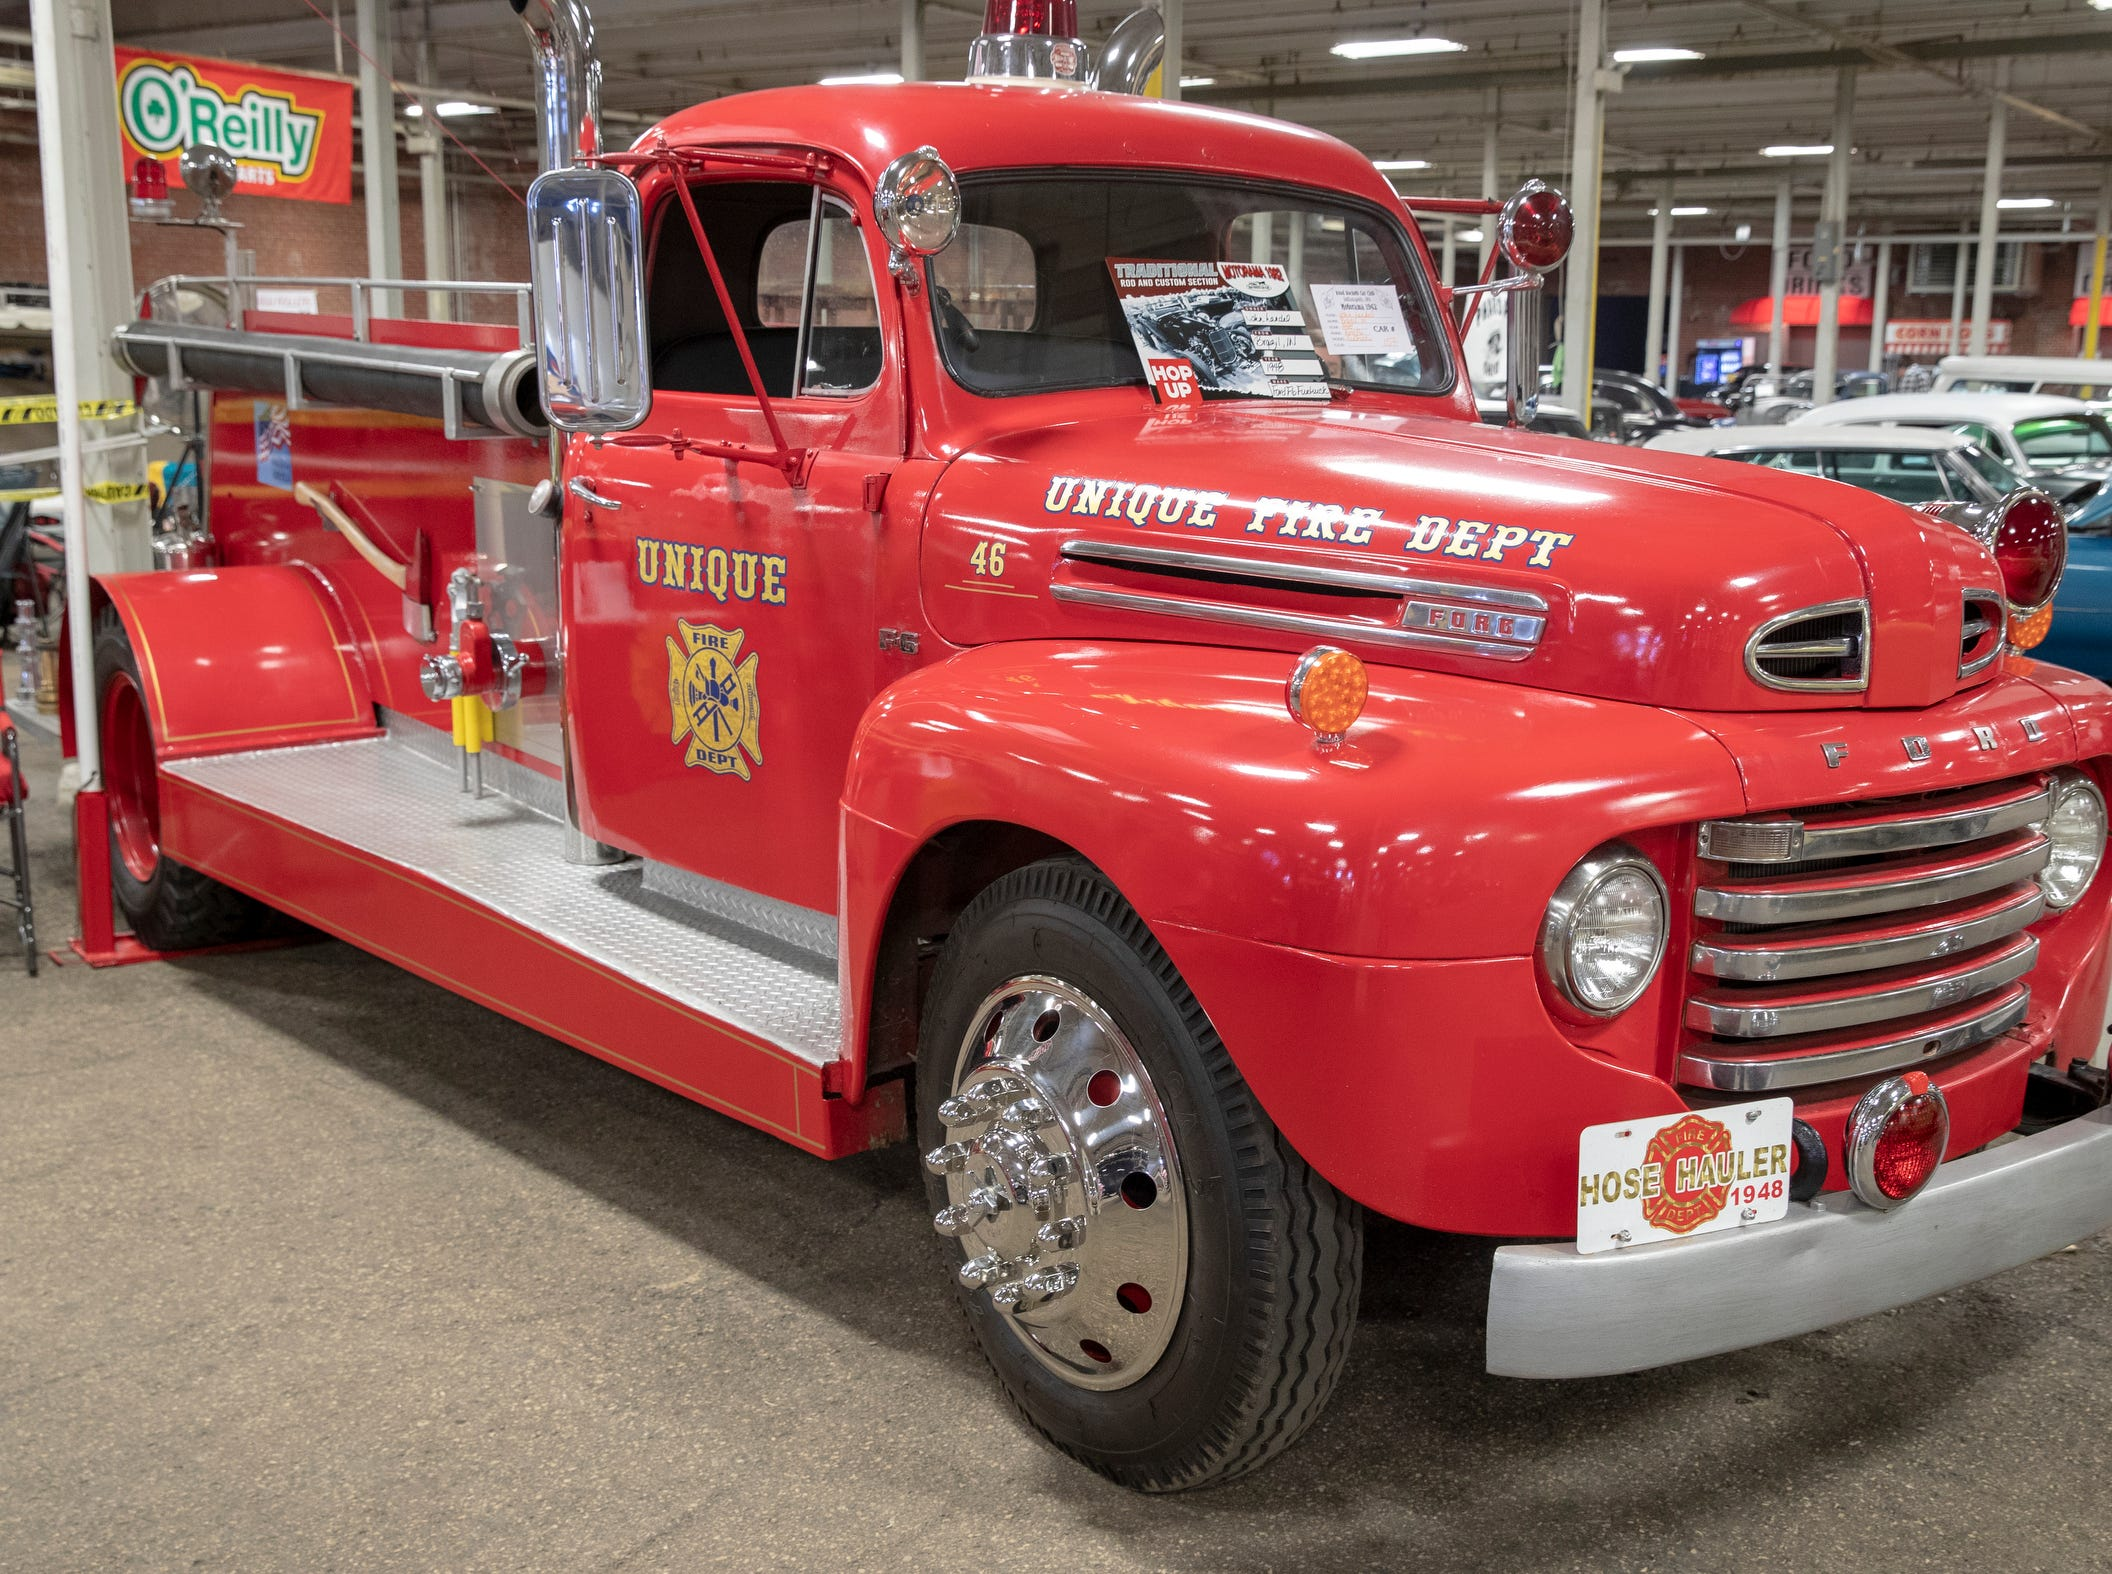 A 1948 Ford Flo firetruck, at World of Wheels at the Indiana State Fairgrounds, Indianapolis, Friday, Feb. 8, 2019. The event runs through the weekend and features four big rooms of stock and heavily customized cars.